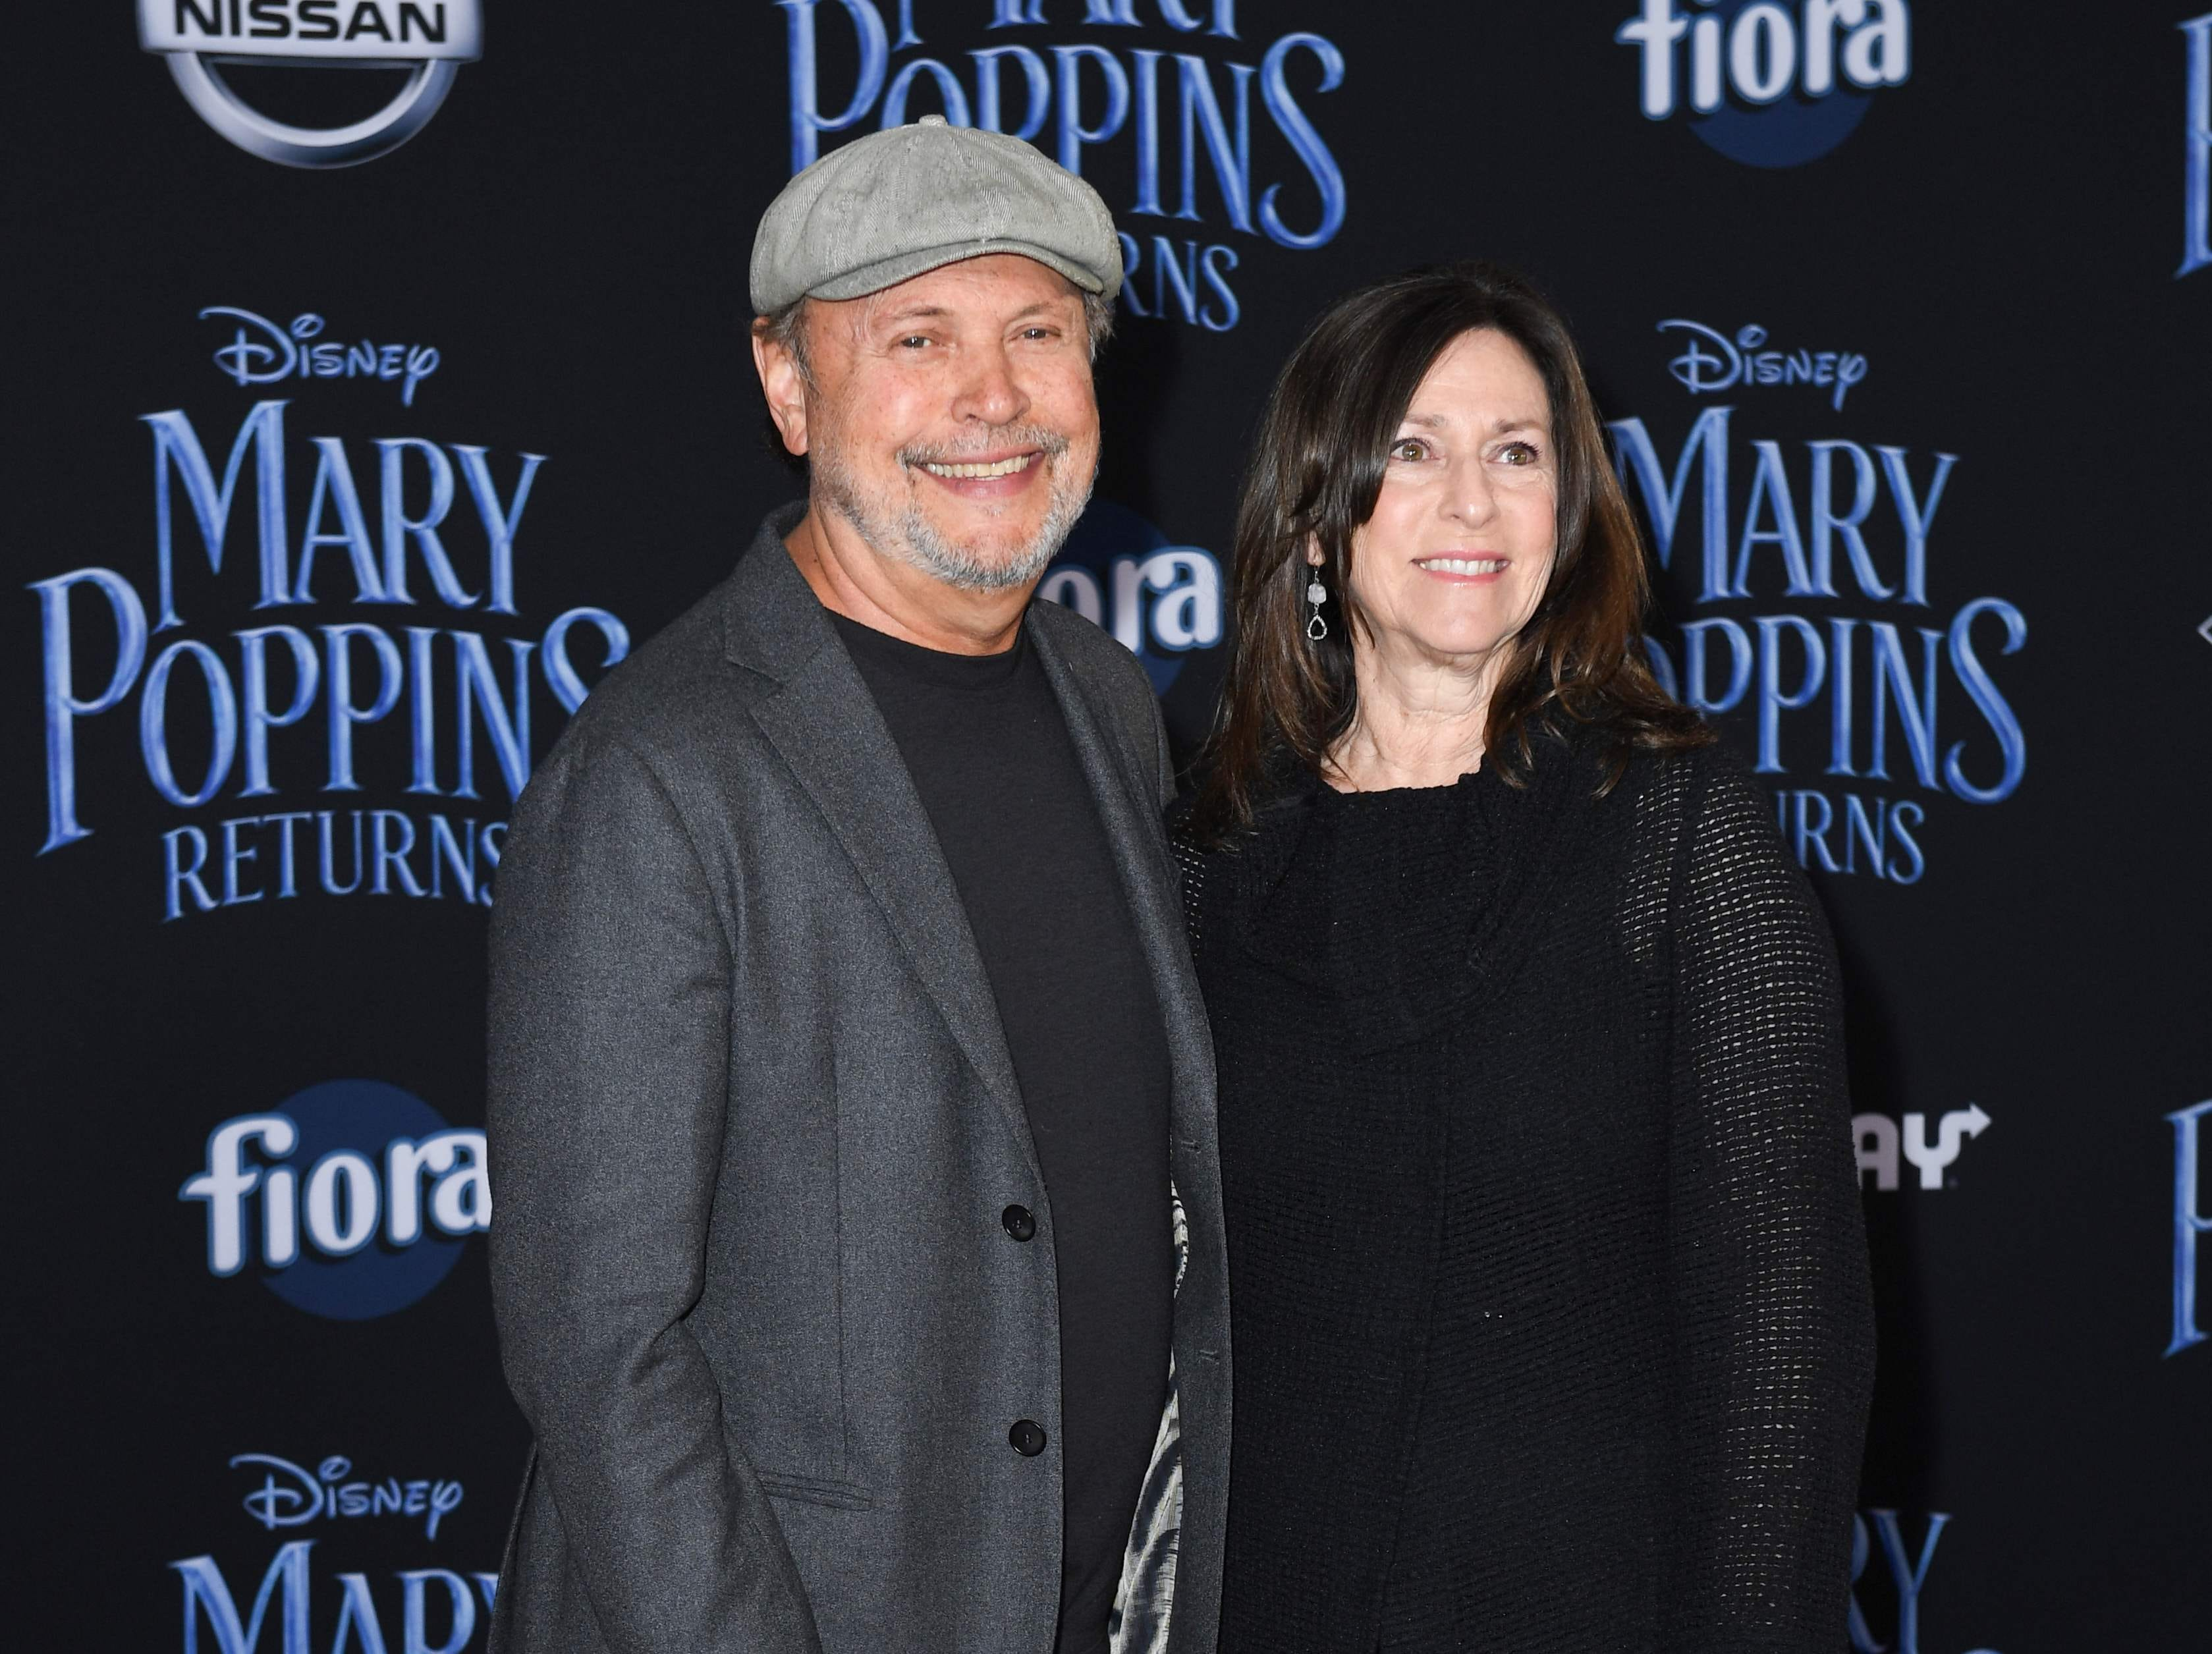 """US actor Billy Crystal and his wife Janice Crystal arrive for the world premiere of Disney's """"Mary Poppins Returns"""" at the Dolby theatre in Hollywood on November 29, 2018. (Photo by VALERIE MACON / AFP)VALERIE MACON/AFP/Getty Images ORG XMIT: 'Mary Pop ORIG FILE ID: AFP_1B81M0"""